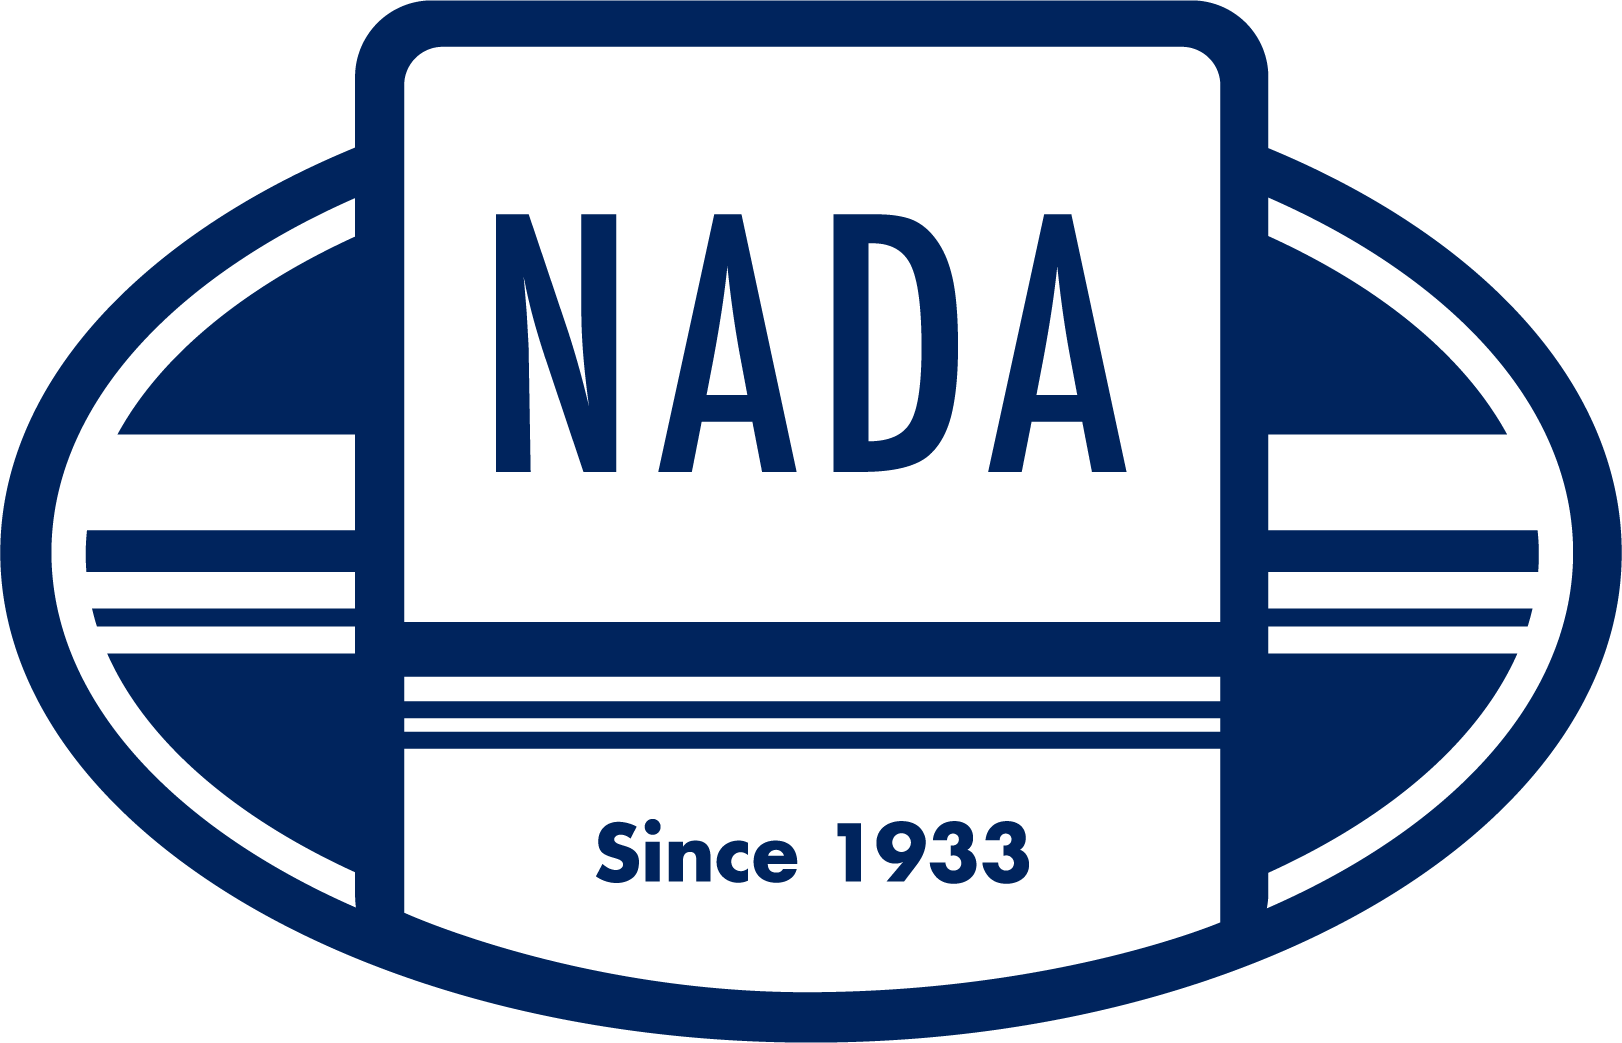 NADA issues highest truck, SUV used car values - CarNewsCafe